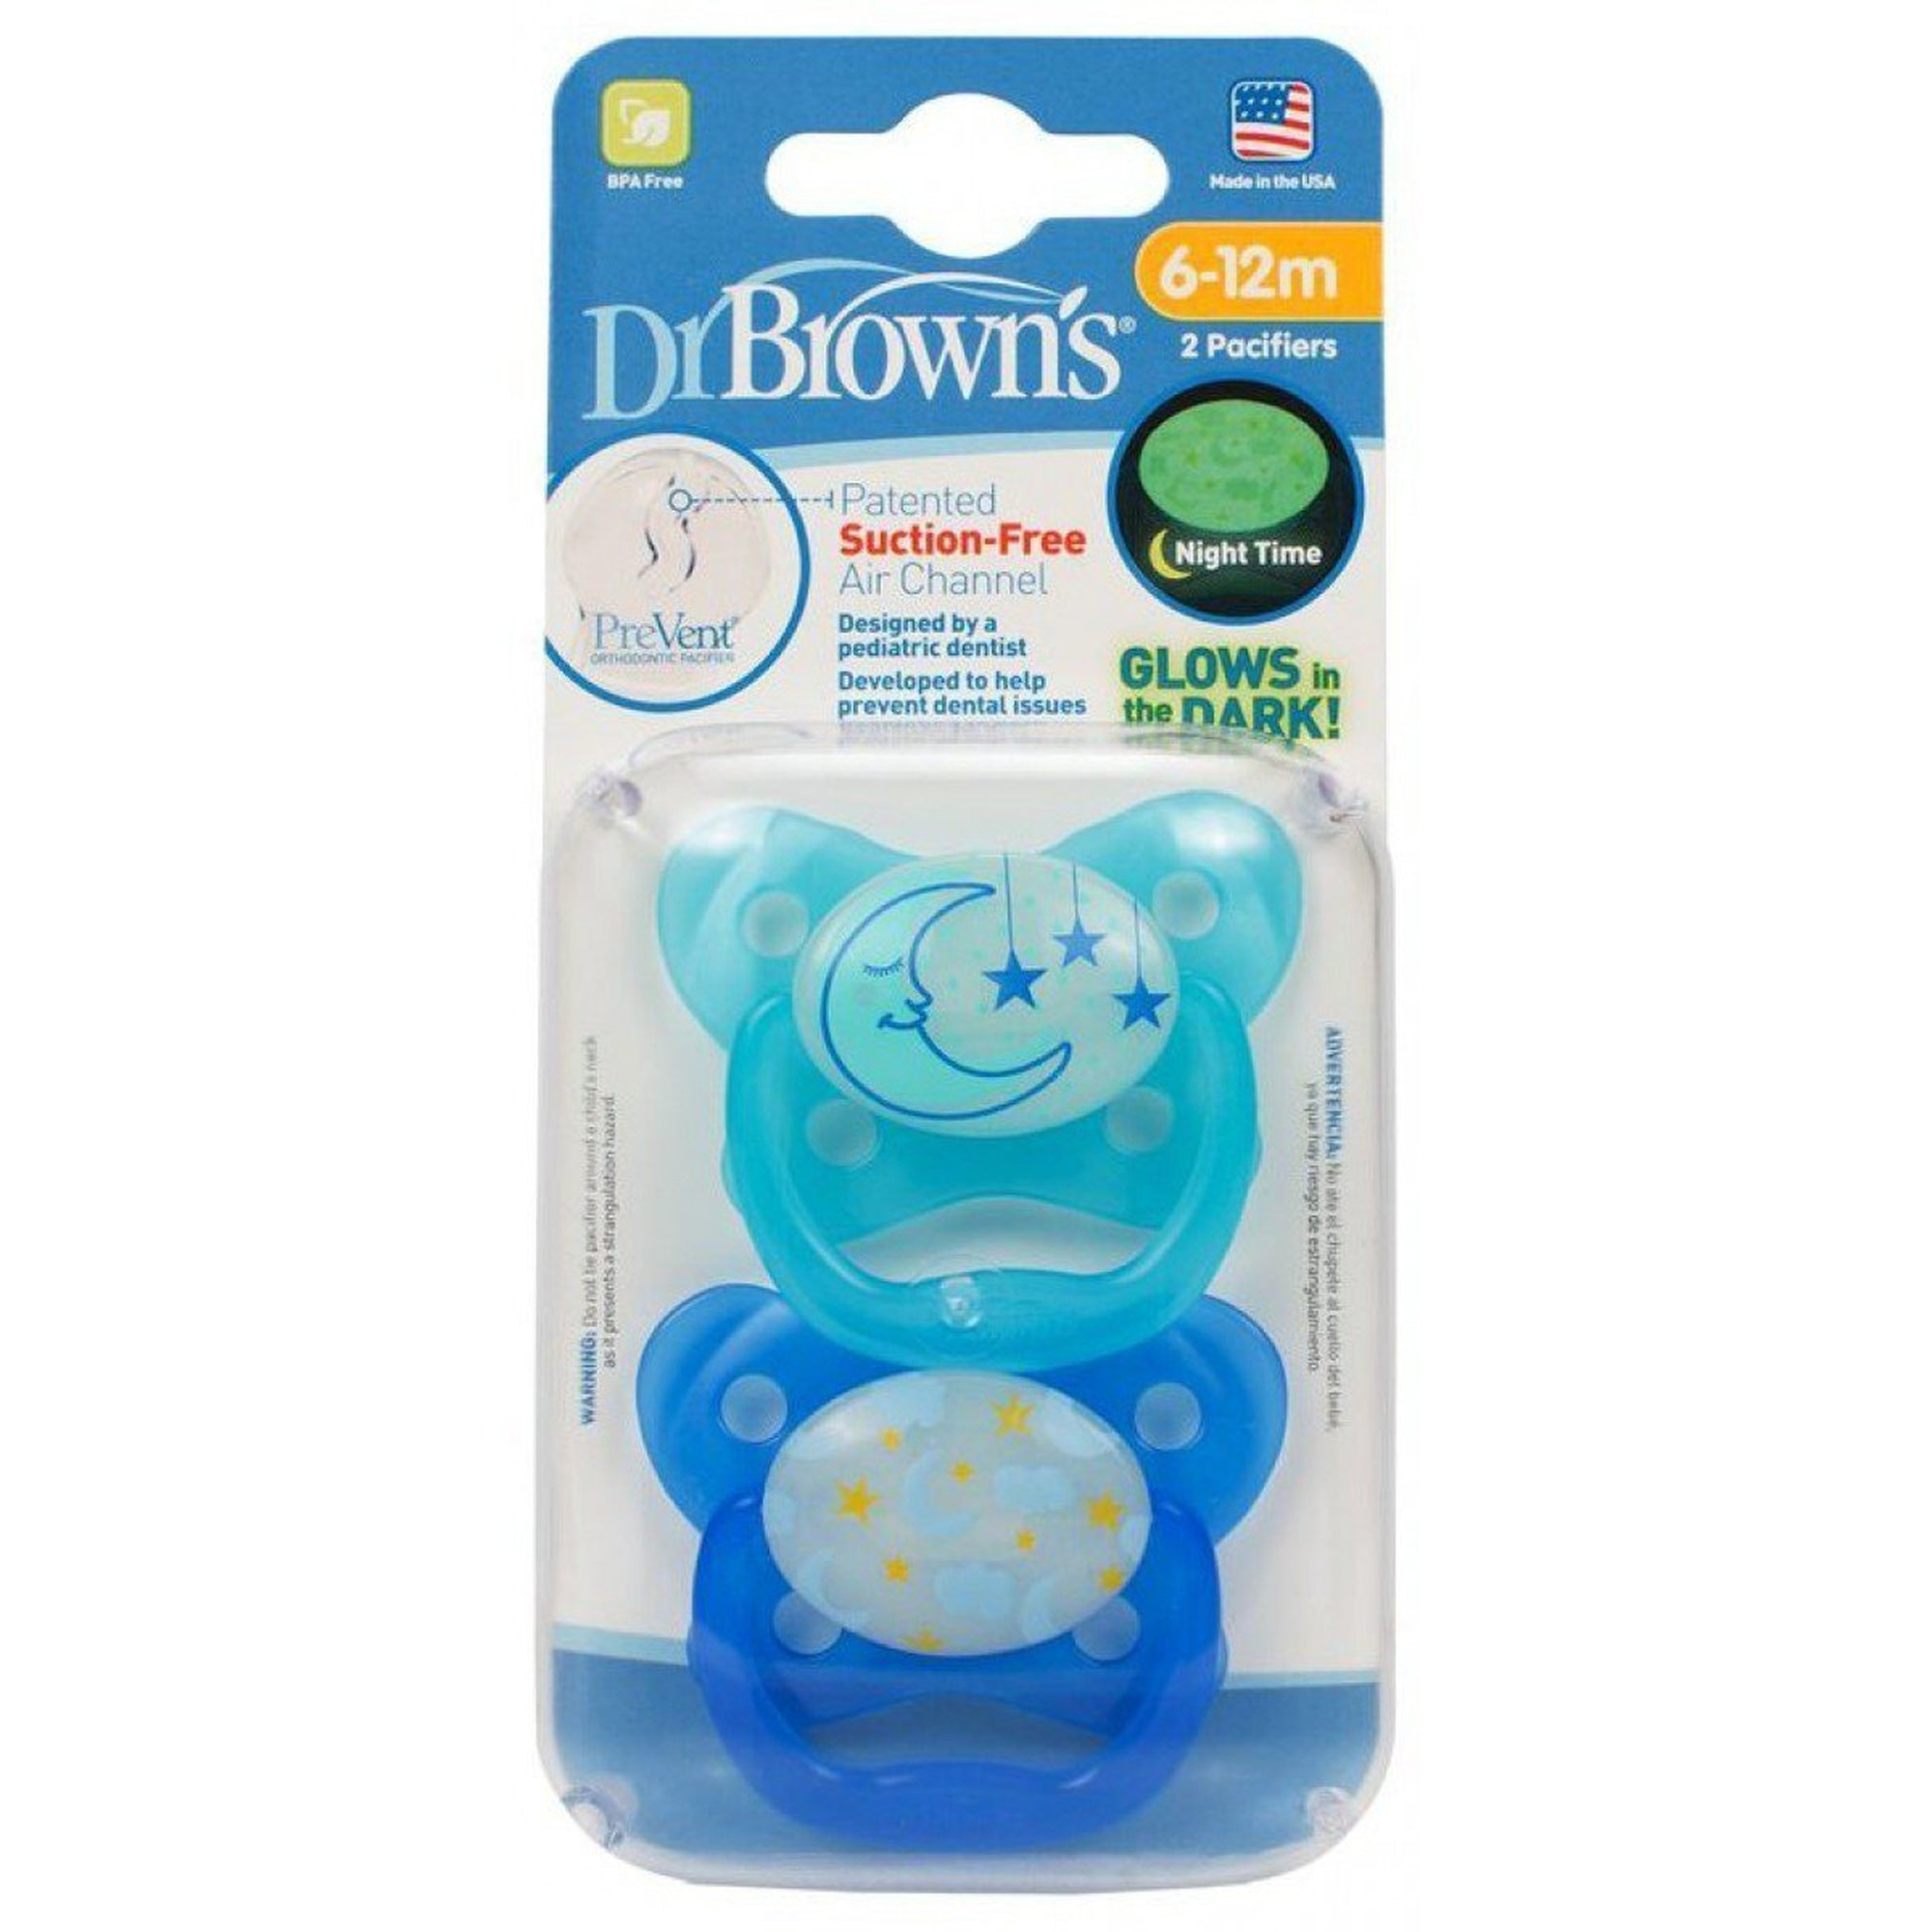 Dr. Brown's PreVent Glow in the Dark BUTTERFLY SHIELD Pacifier - Stage 2 * 6-12M - 2-Pack-Pacifier-Mother and Baby Shop Kenya's #1 Online Baby Shop